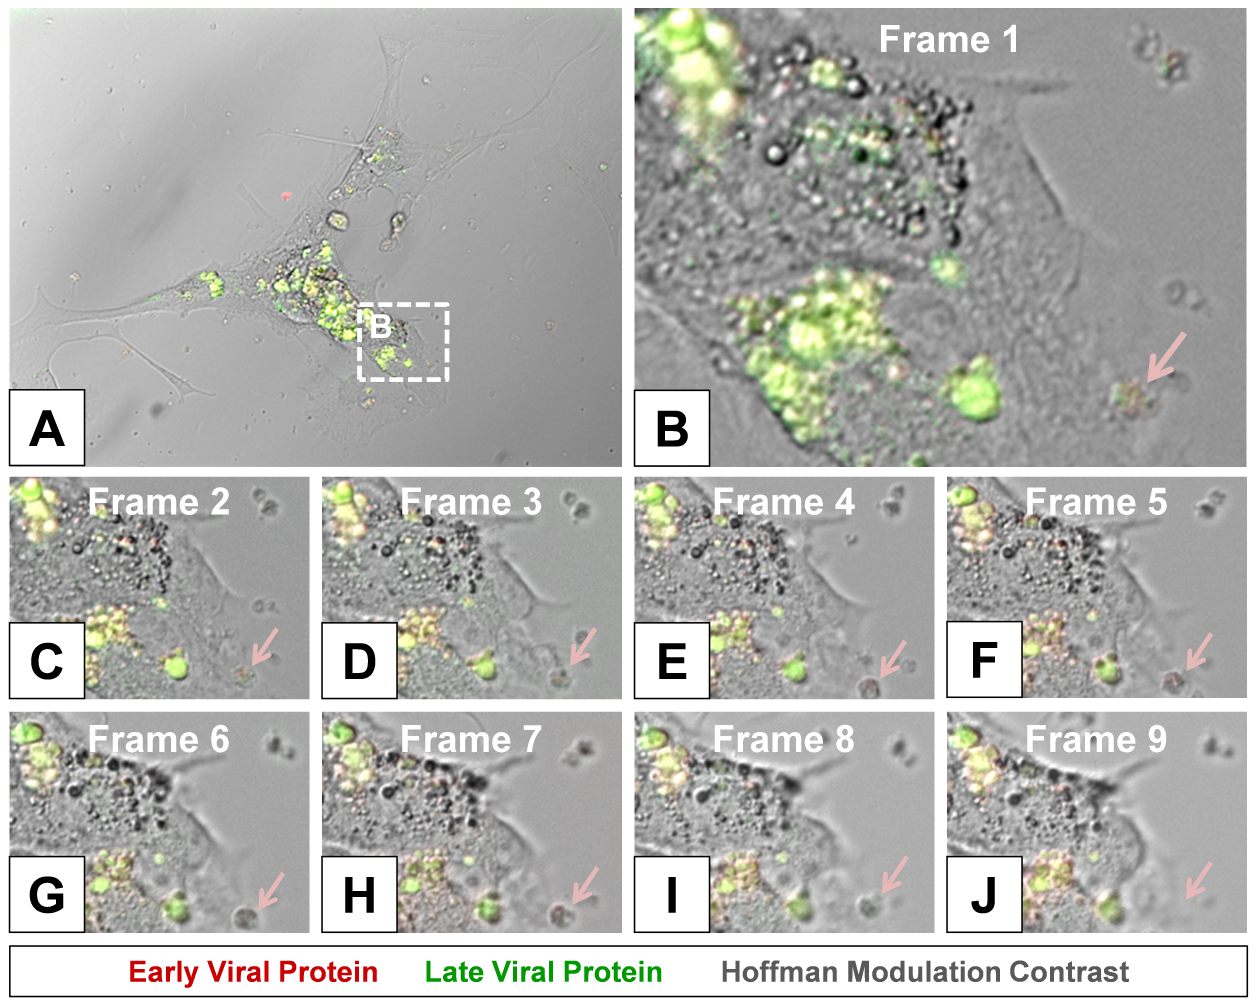 Time lapse photography frames showing microvesicle egress from a Timer-CVB3-infected cell.